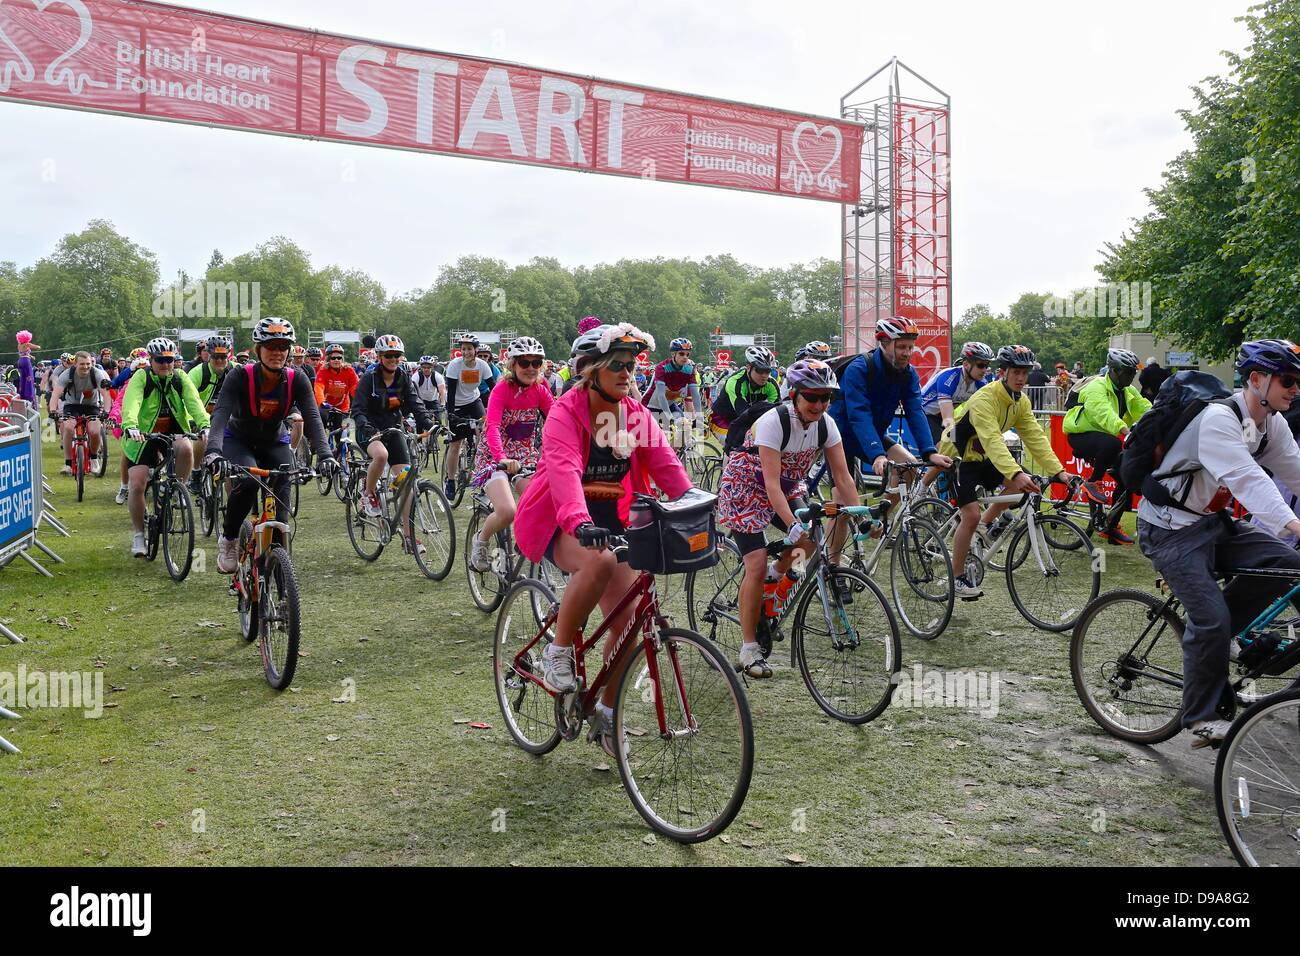 Clapham Common, London UK. 16 June 2013. Cyclists at the staged start of the British Heart Foundation Bike Ride. Stock Photo